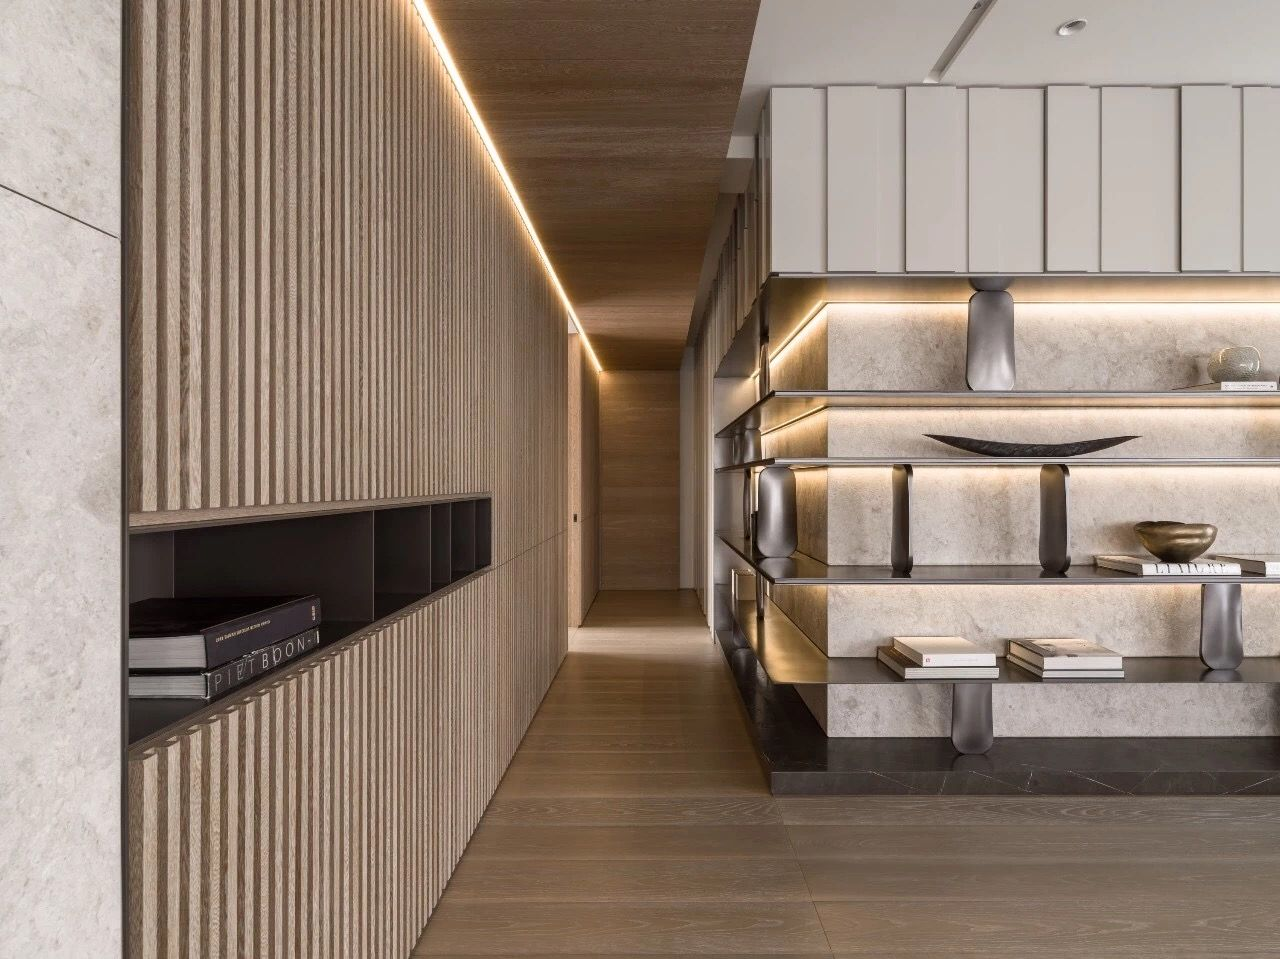 Pin By 冯宁 Fornning On A客厅 Furnishings Design Apartment